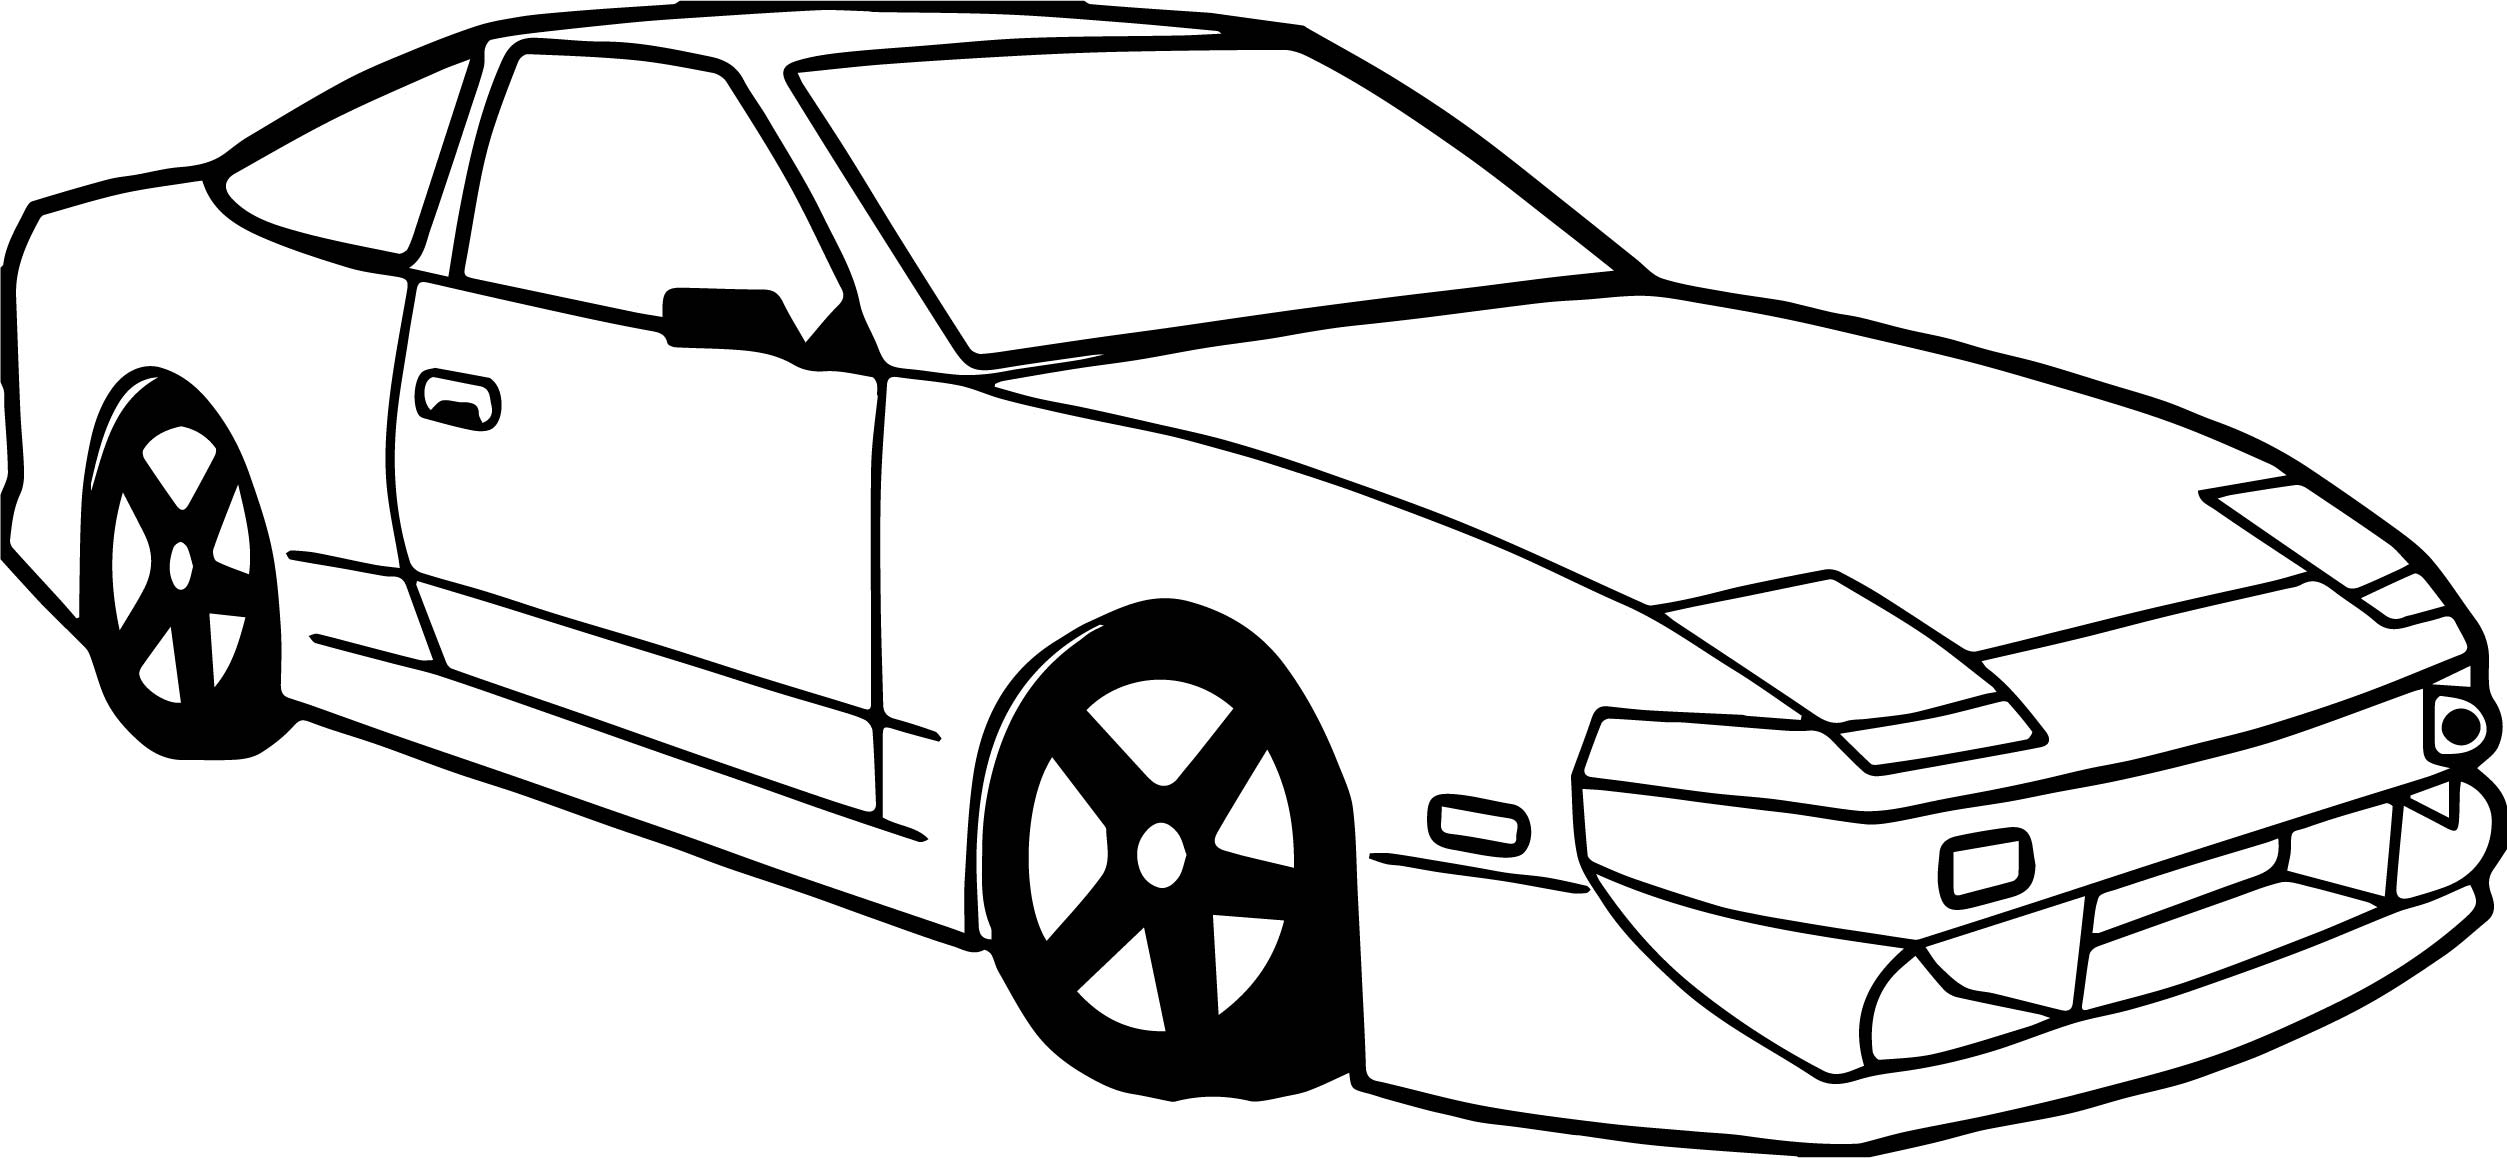 coloring toy car matter toy car outline clipart clipartfox clipart best toy car coloring